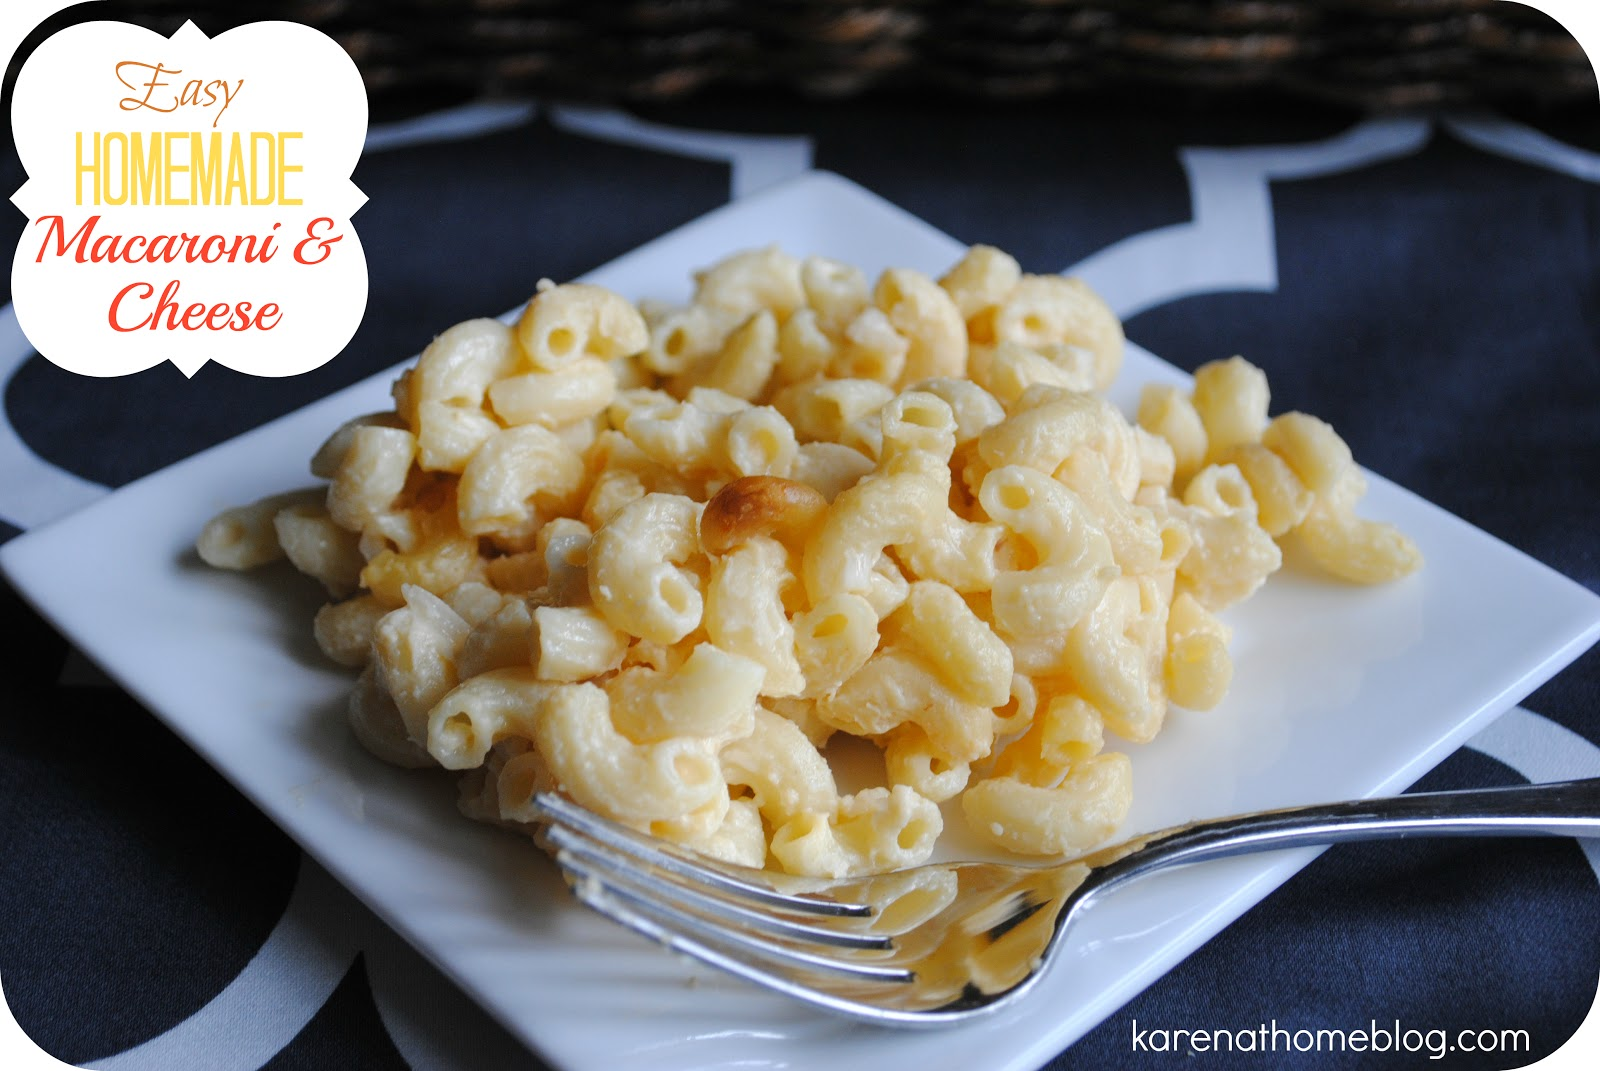 Karen At Home: Easy Homemade Macaroni and Cheese